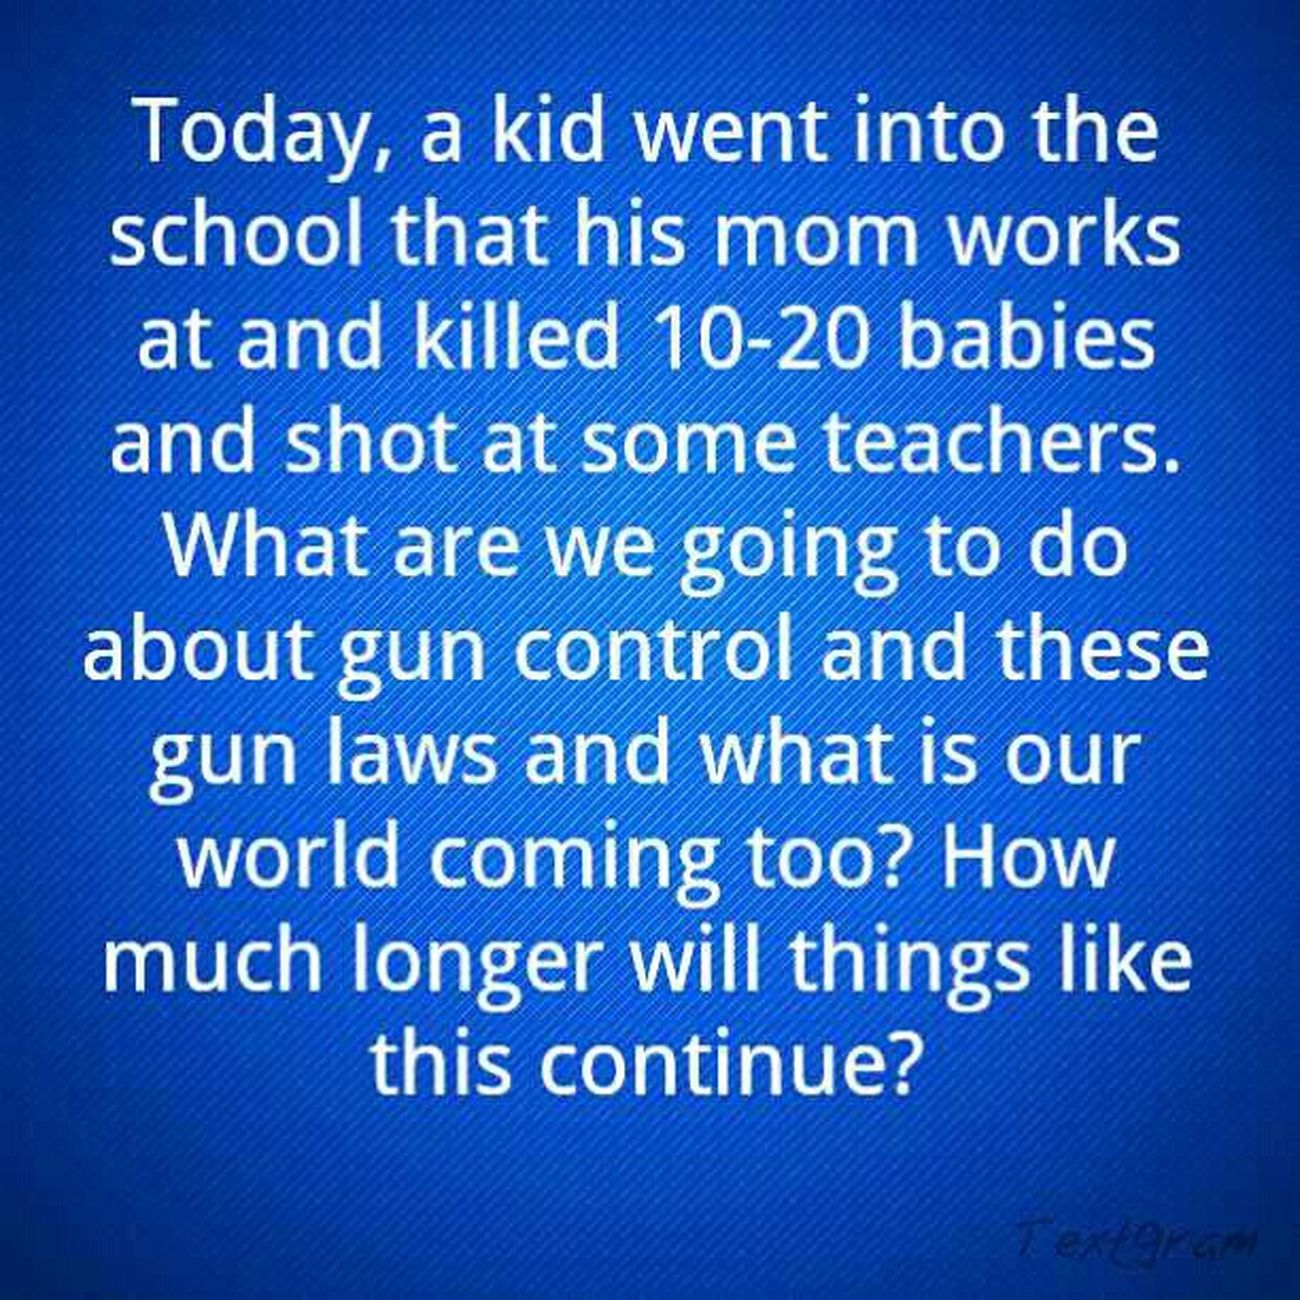 GunControl Gunlaws Tragedy Theworld